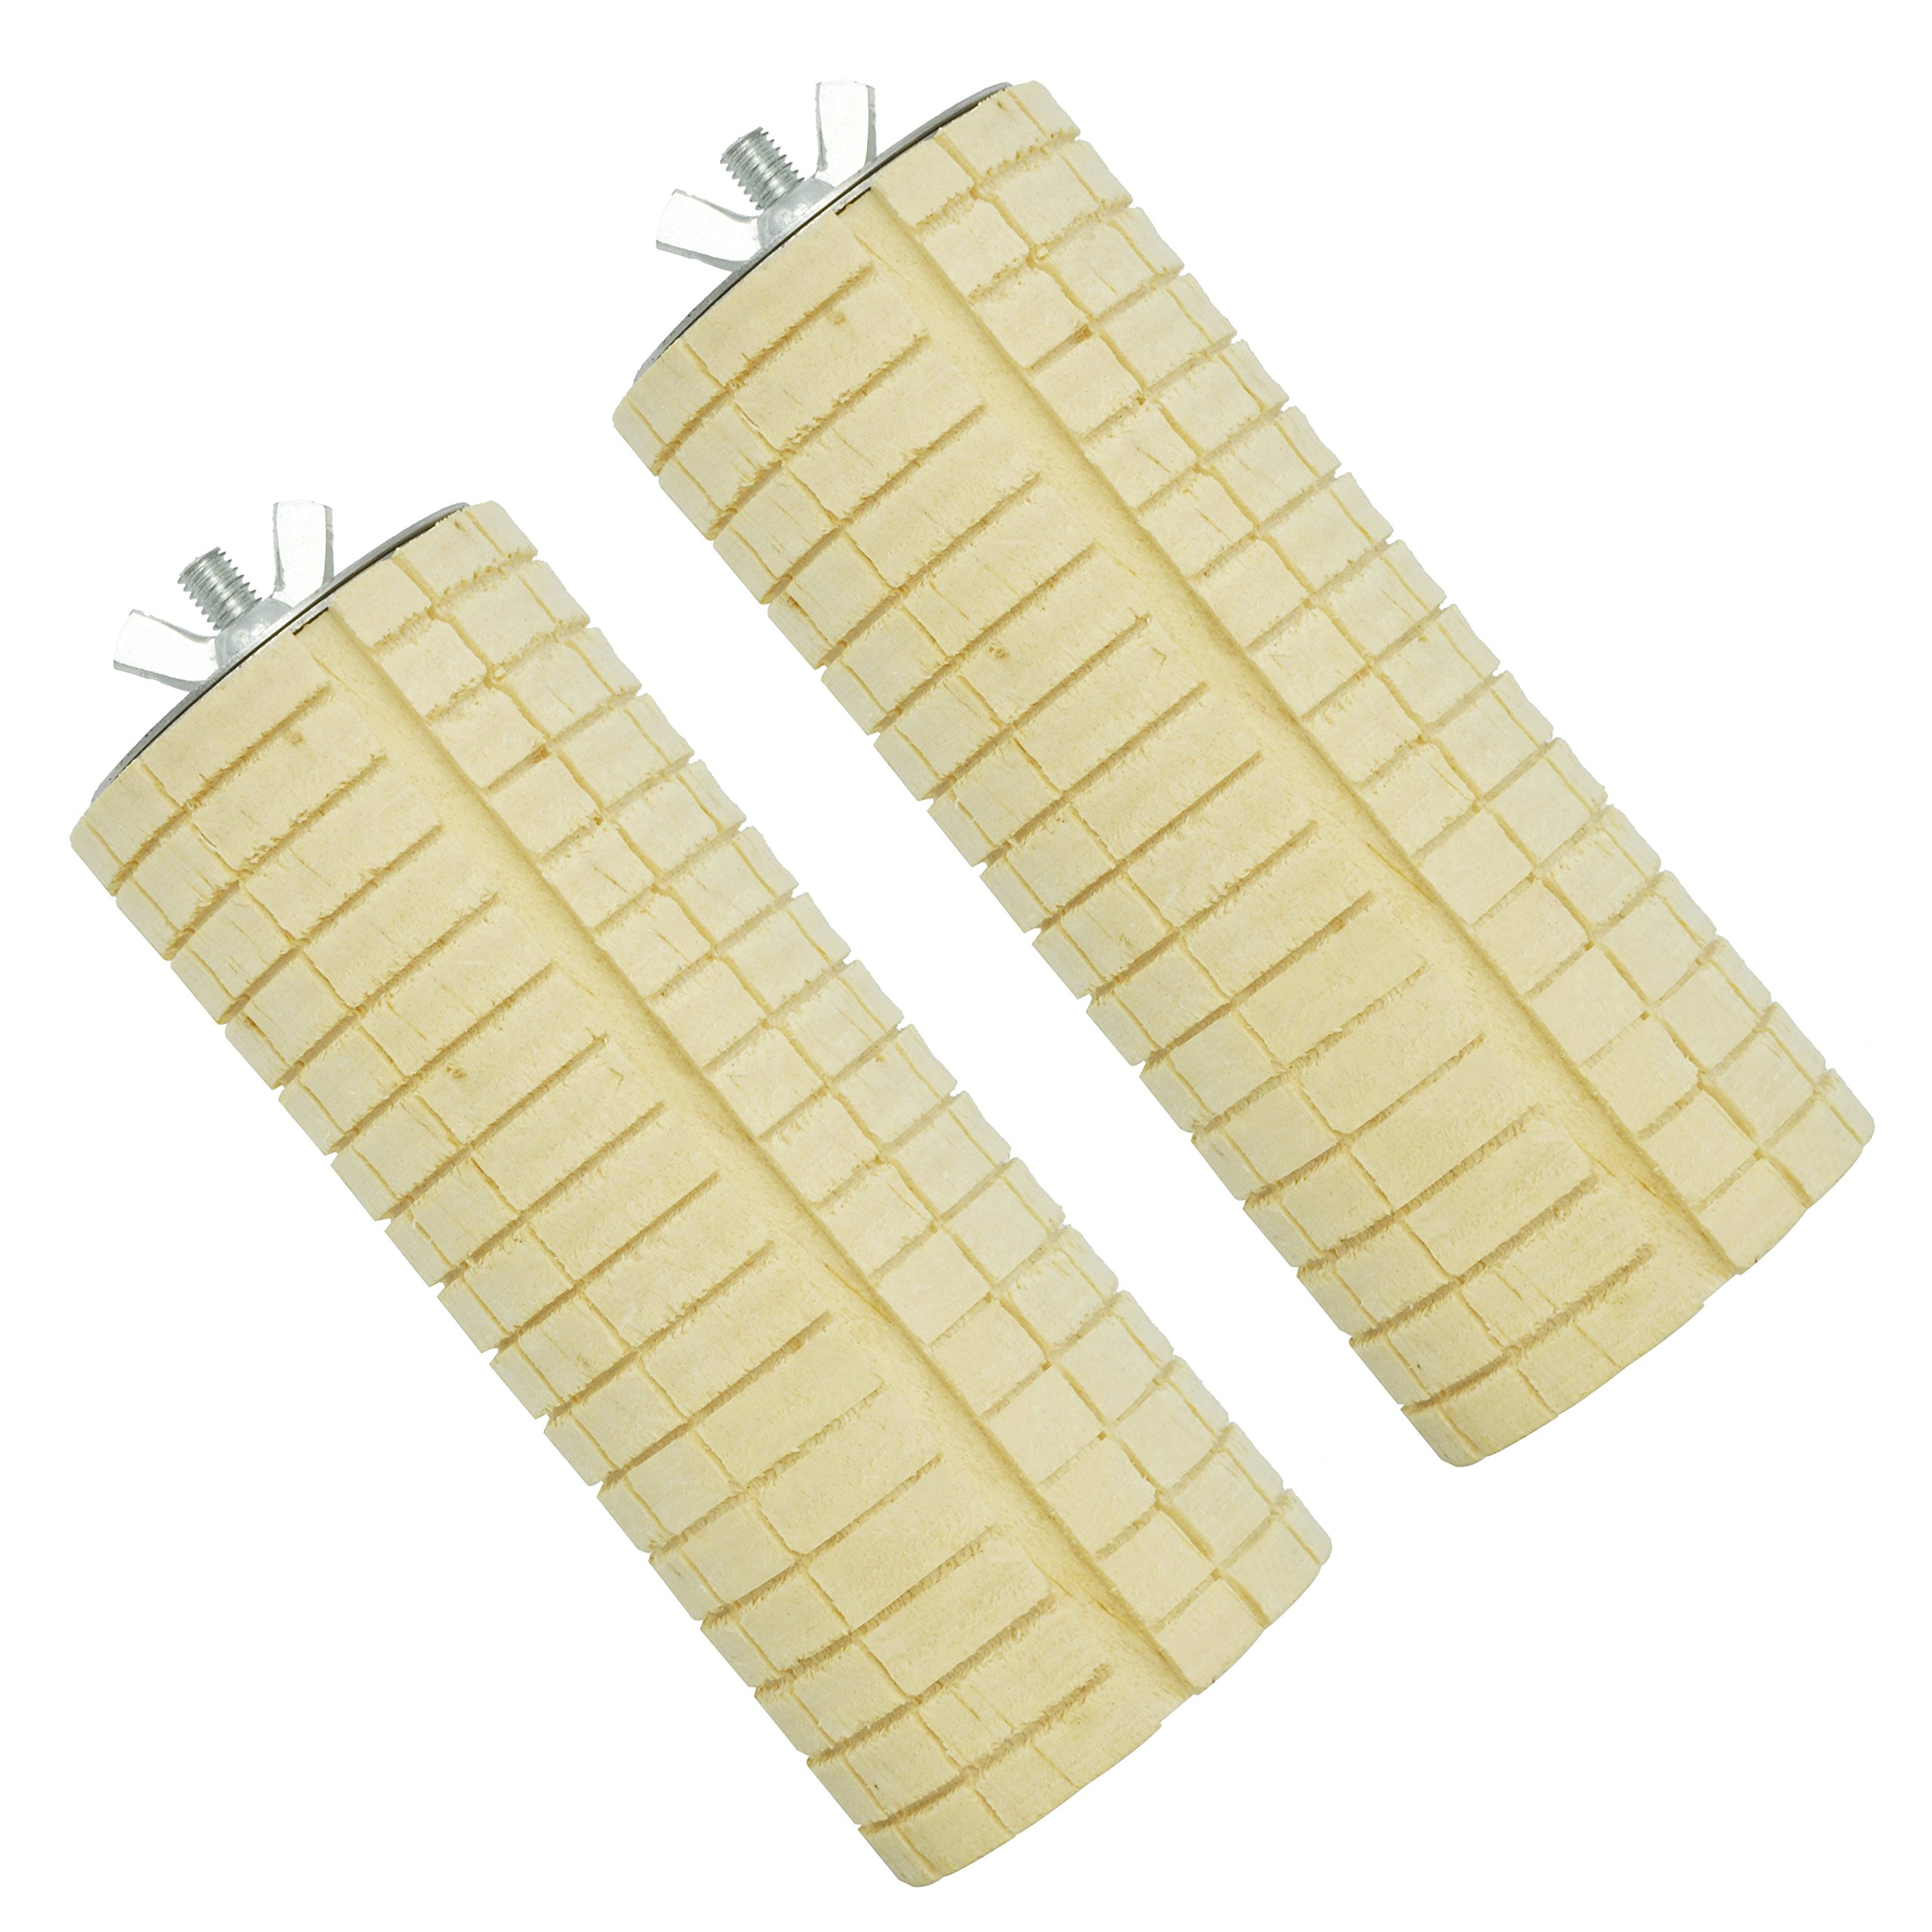 Niteangel Wooden Small Animal Cage Toy, Teeth Grinding Chew Toy for Hamster Rat Chinchilla, Wooden Cage Platform, 2 Pack